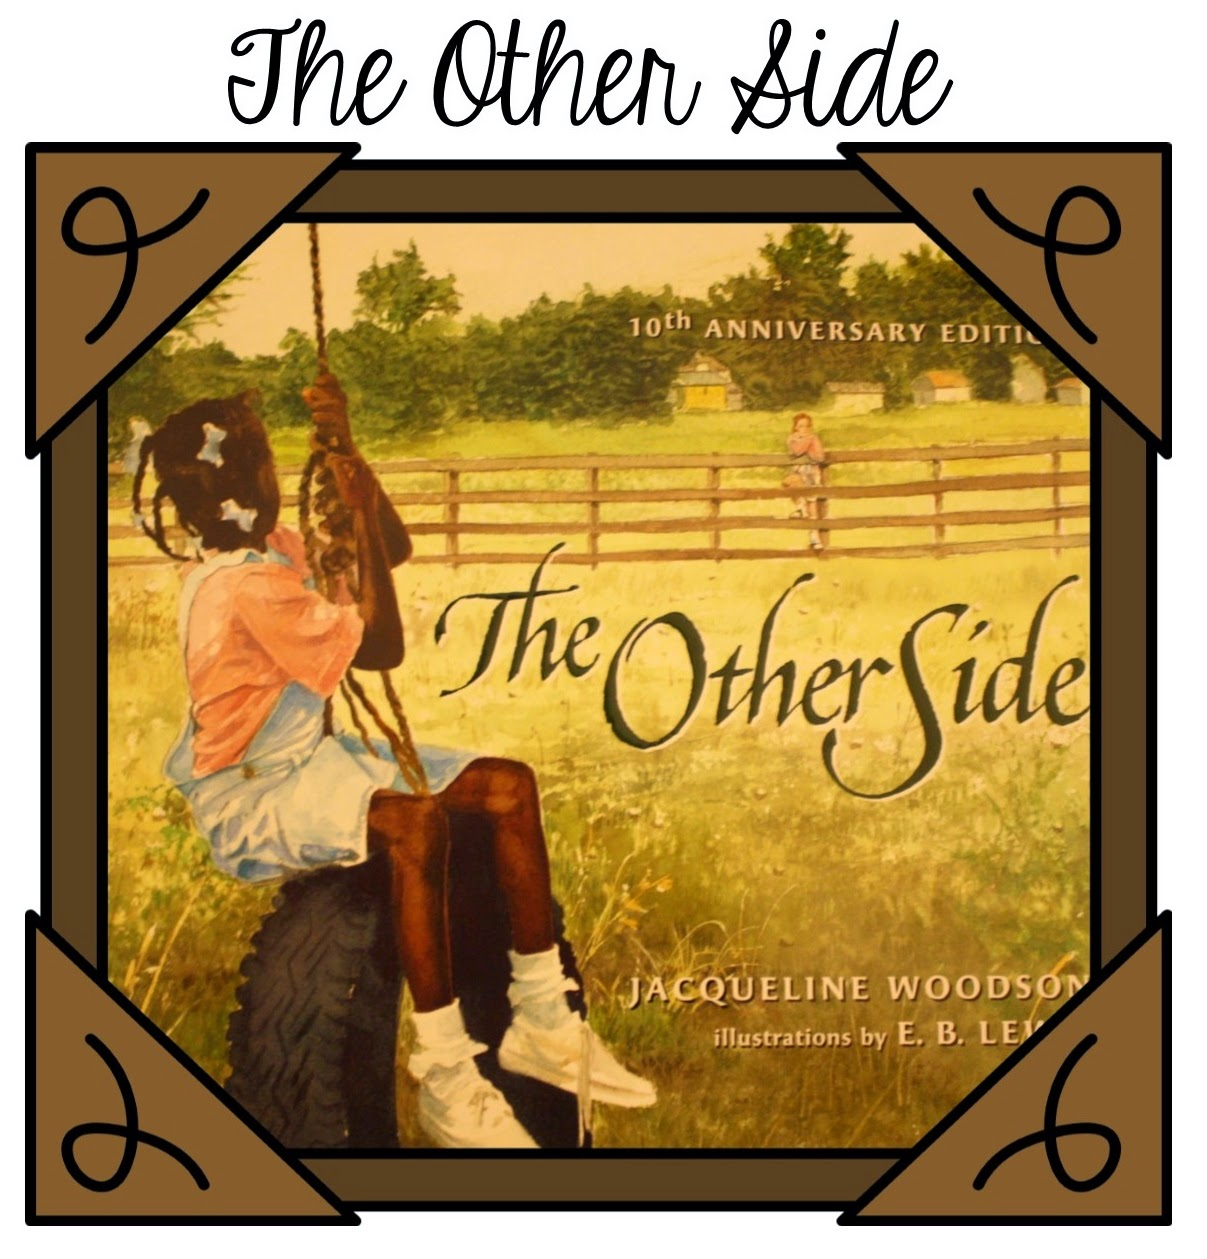 http://www.amazon.com/Other-Side-Jacqueline-Woodson/dp/0399231161/ref=sr_1_1?ie=UTF8&qid=1421621383&sr=8-1&keywords=The+Other+Side